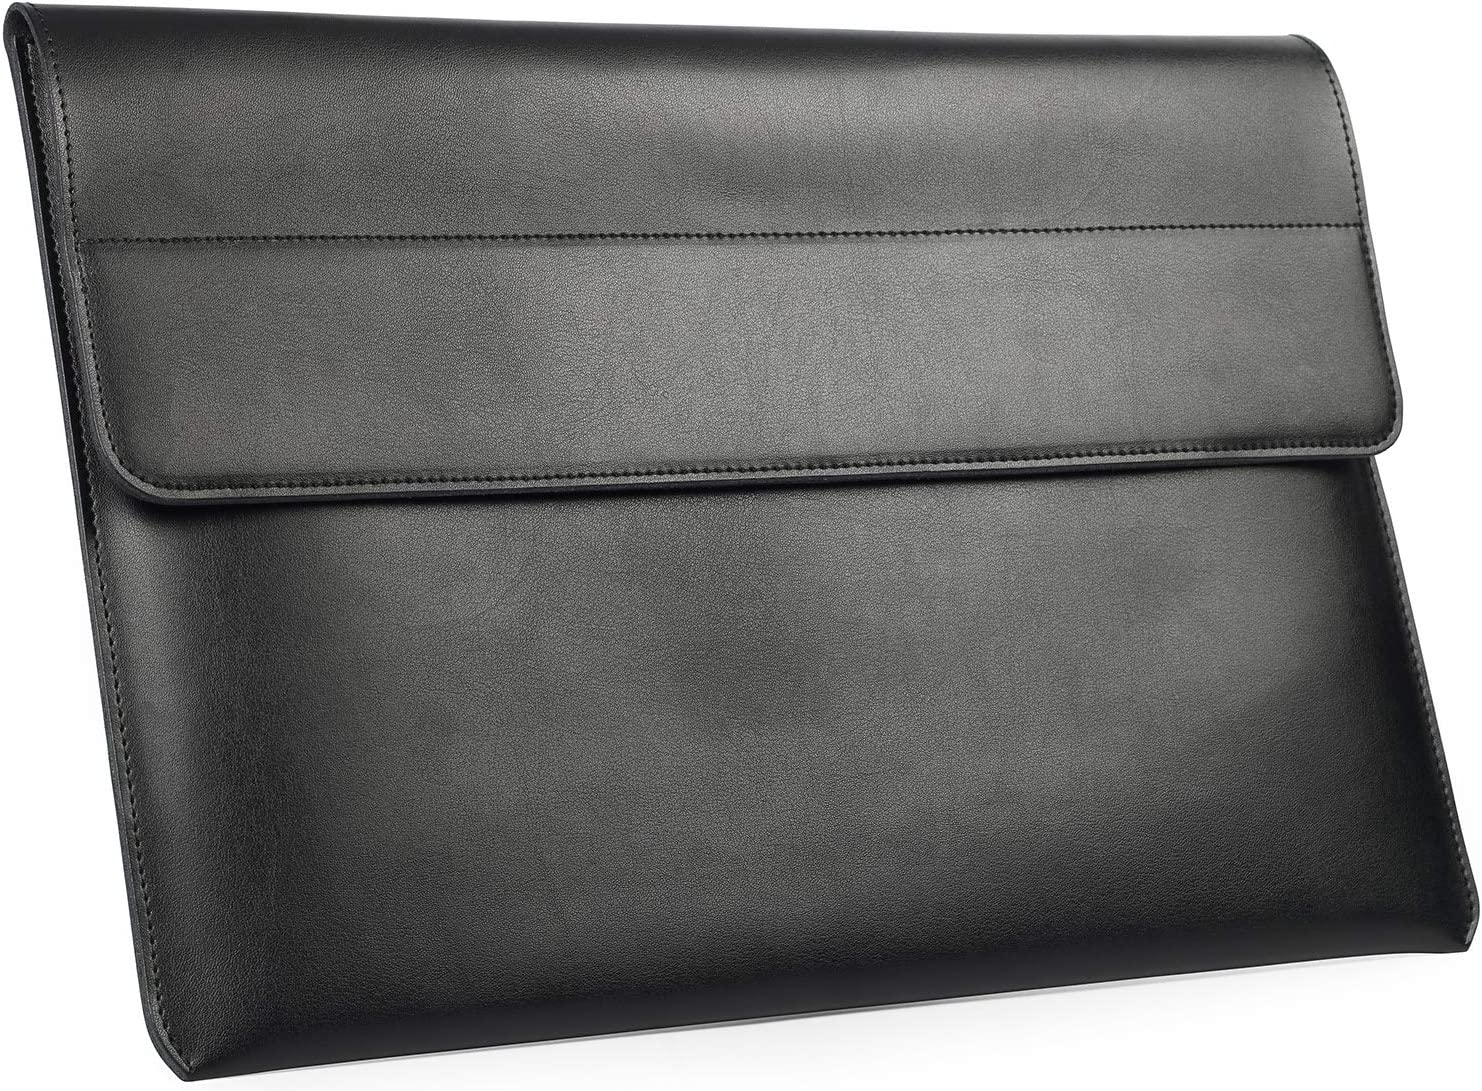 TYTX Split Leather Laptop Sleeve 13.3 Inch MacBook Air MacBook Pro Protective Cover Case Fits Model A1466/A1369/A1502/A1425 (Black)